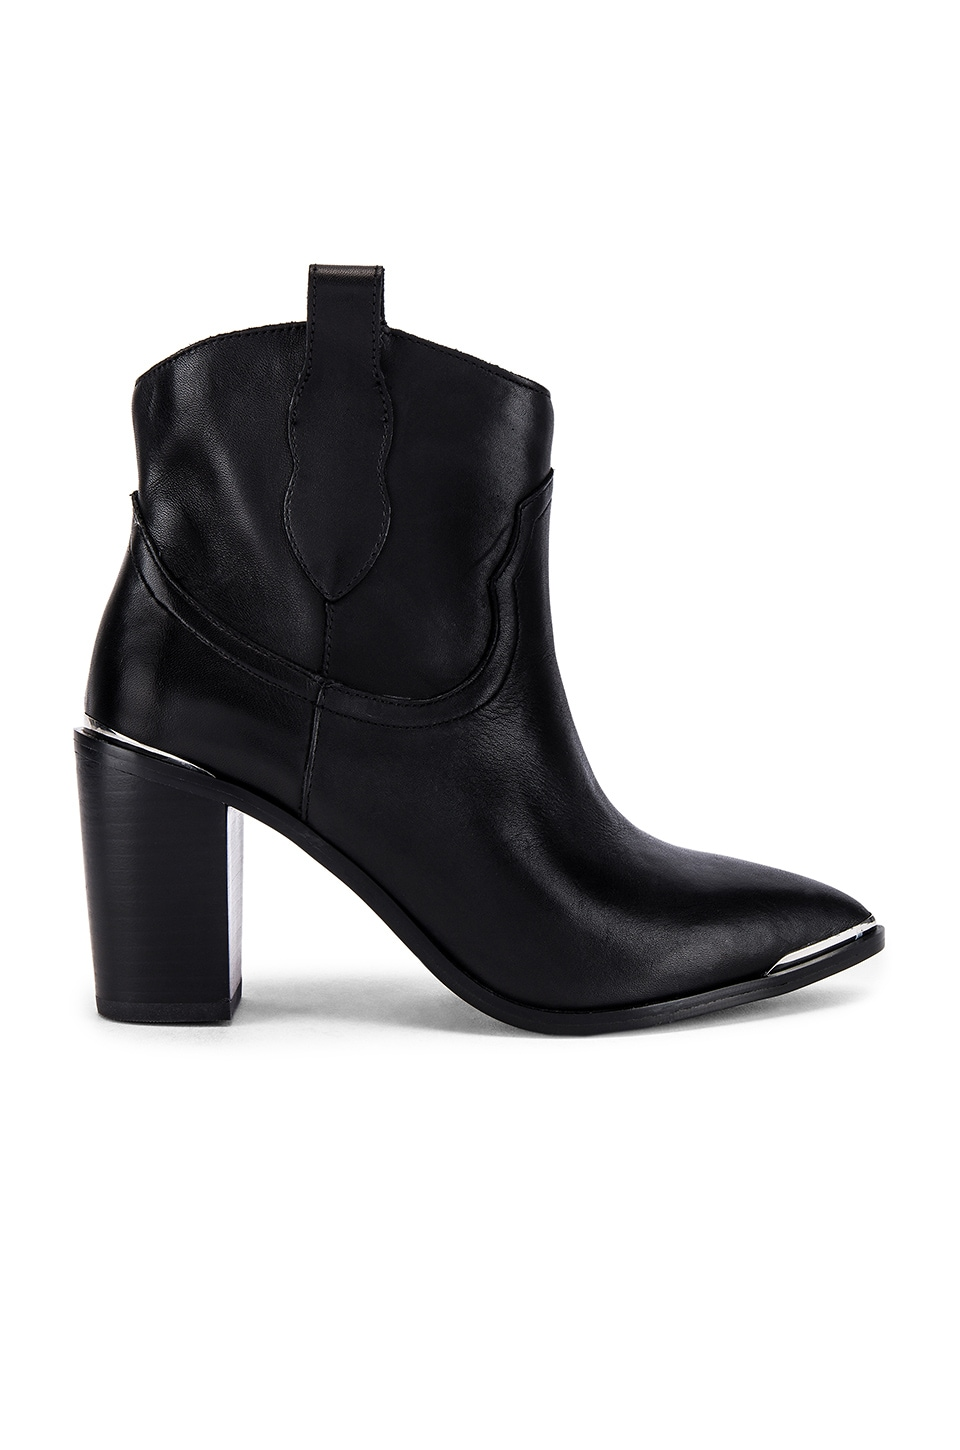 Steve Madden Zora Ankle Boot in Black